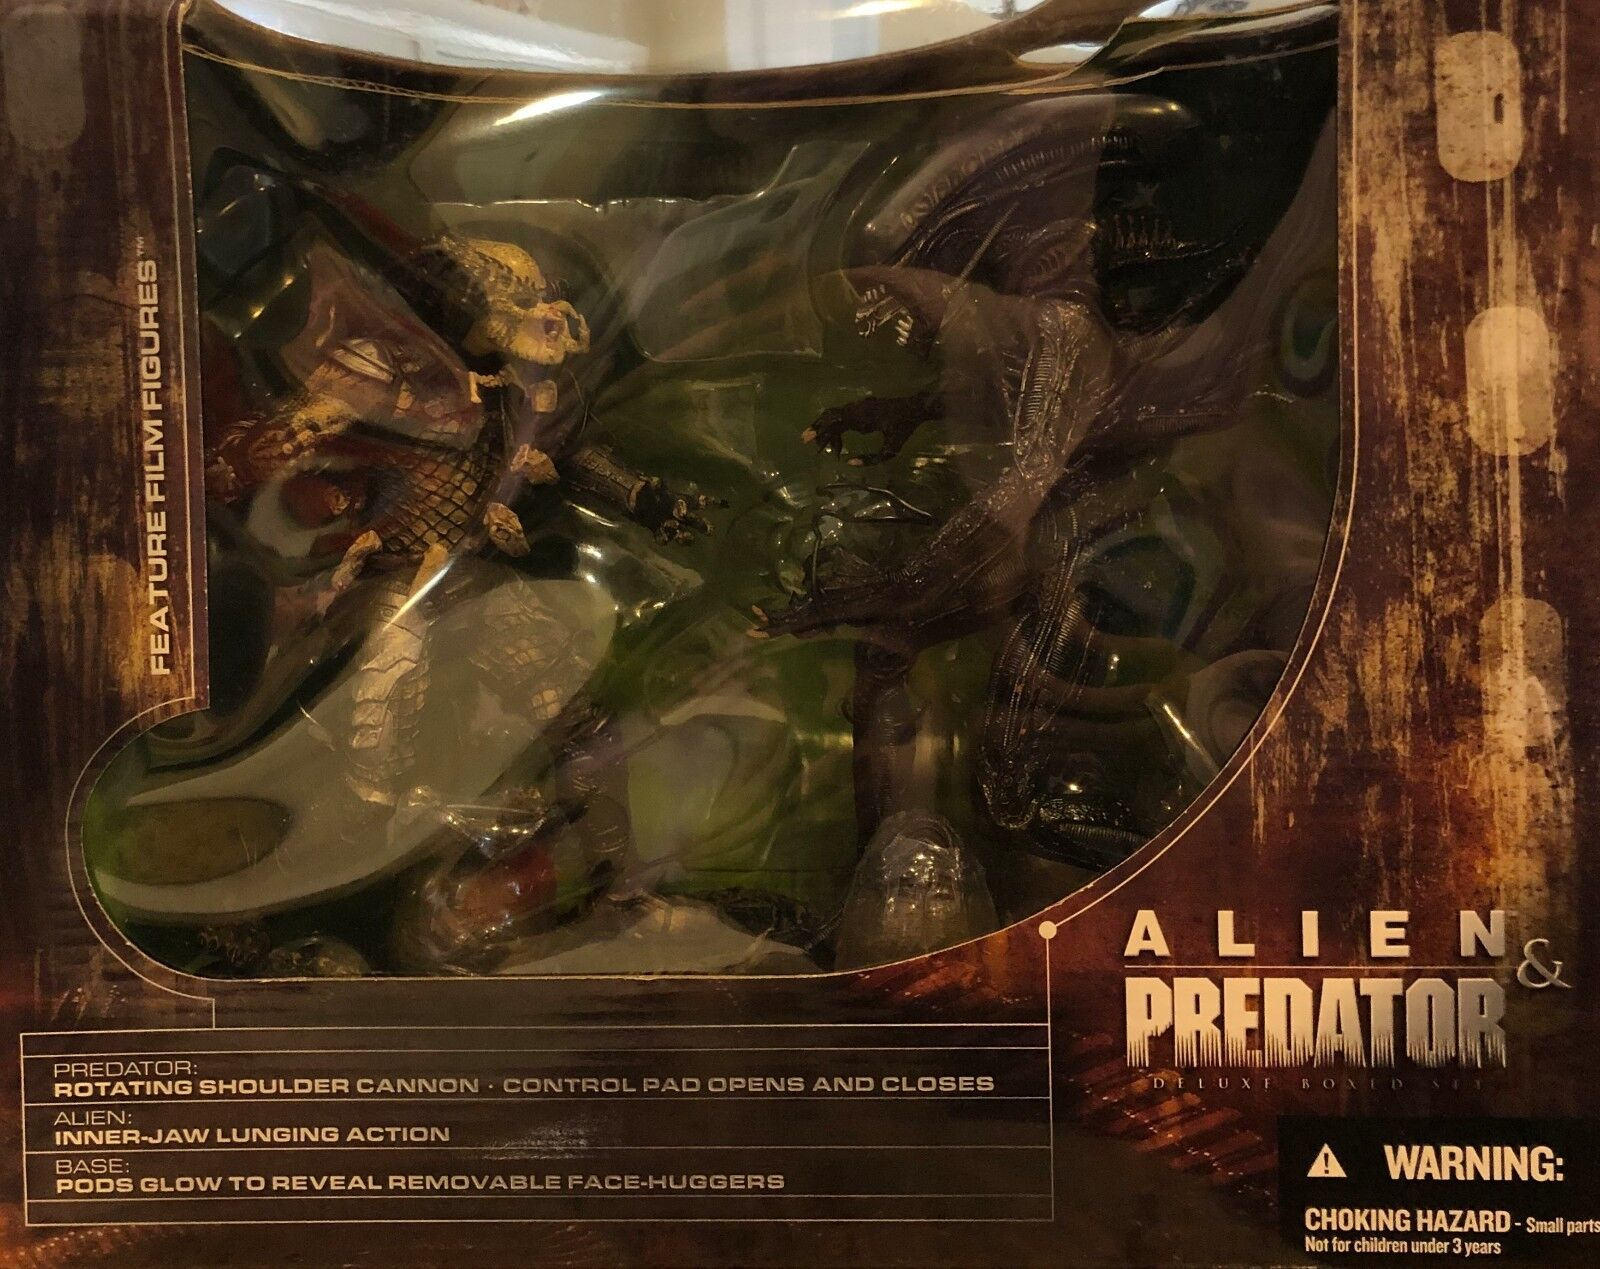 Alien und protator deluxe box set mcfarlane.